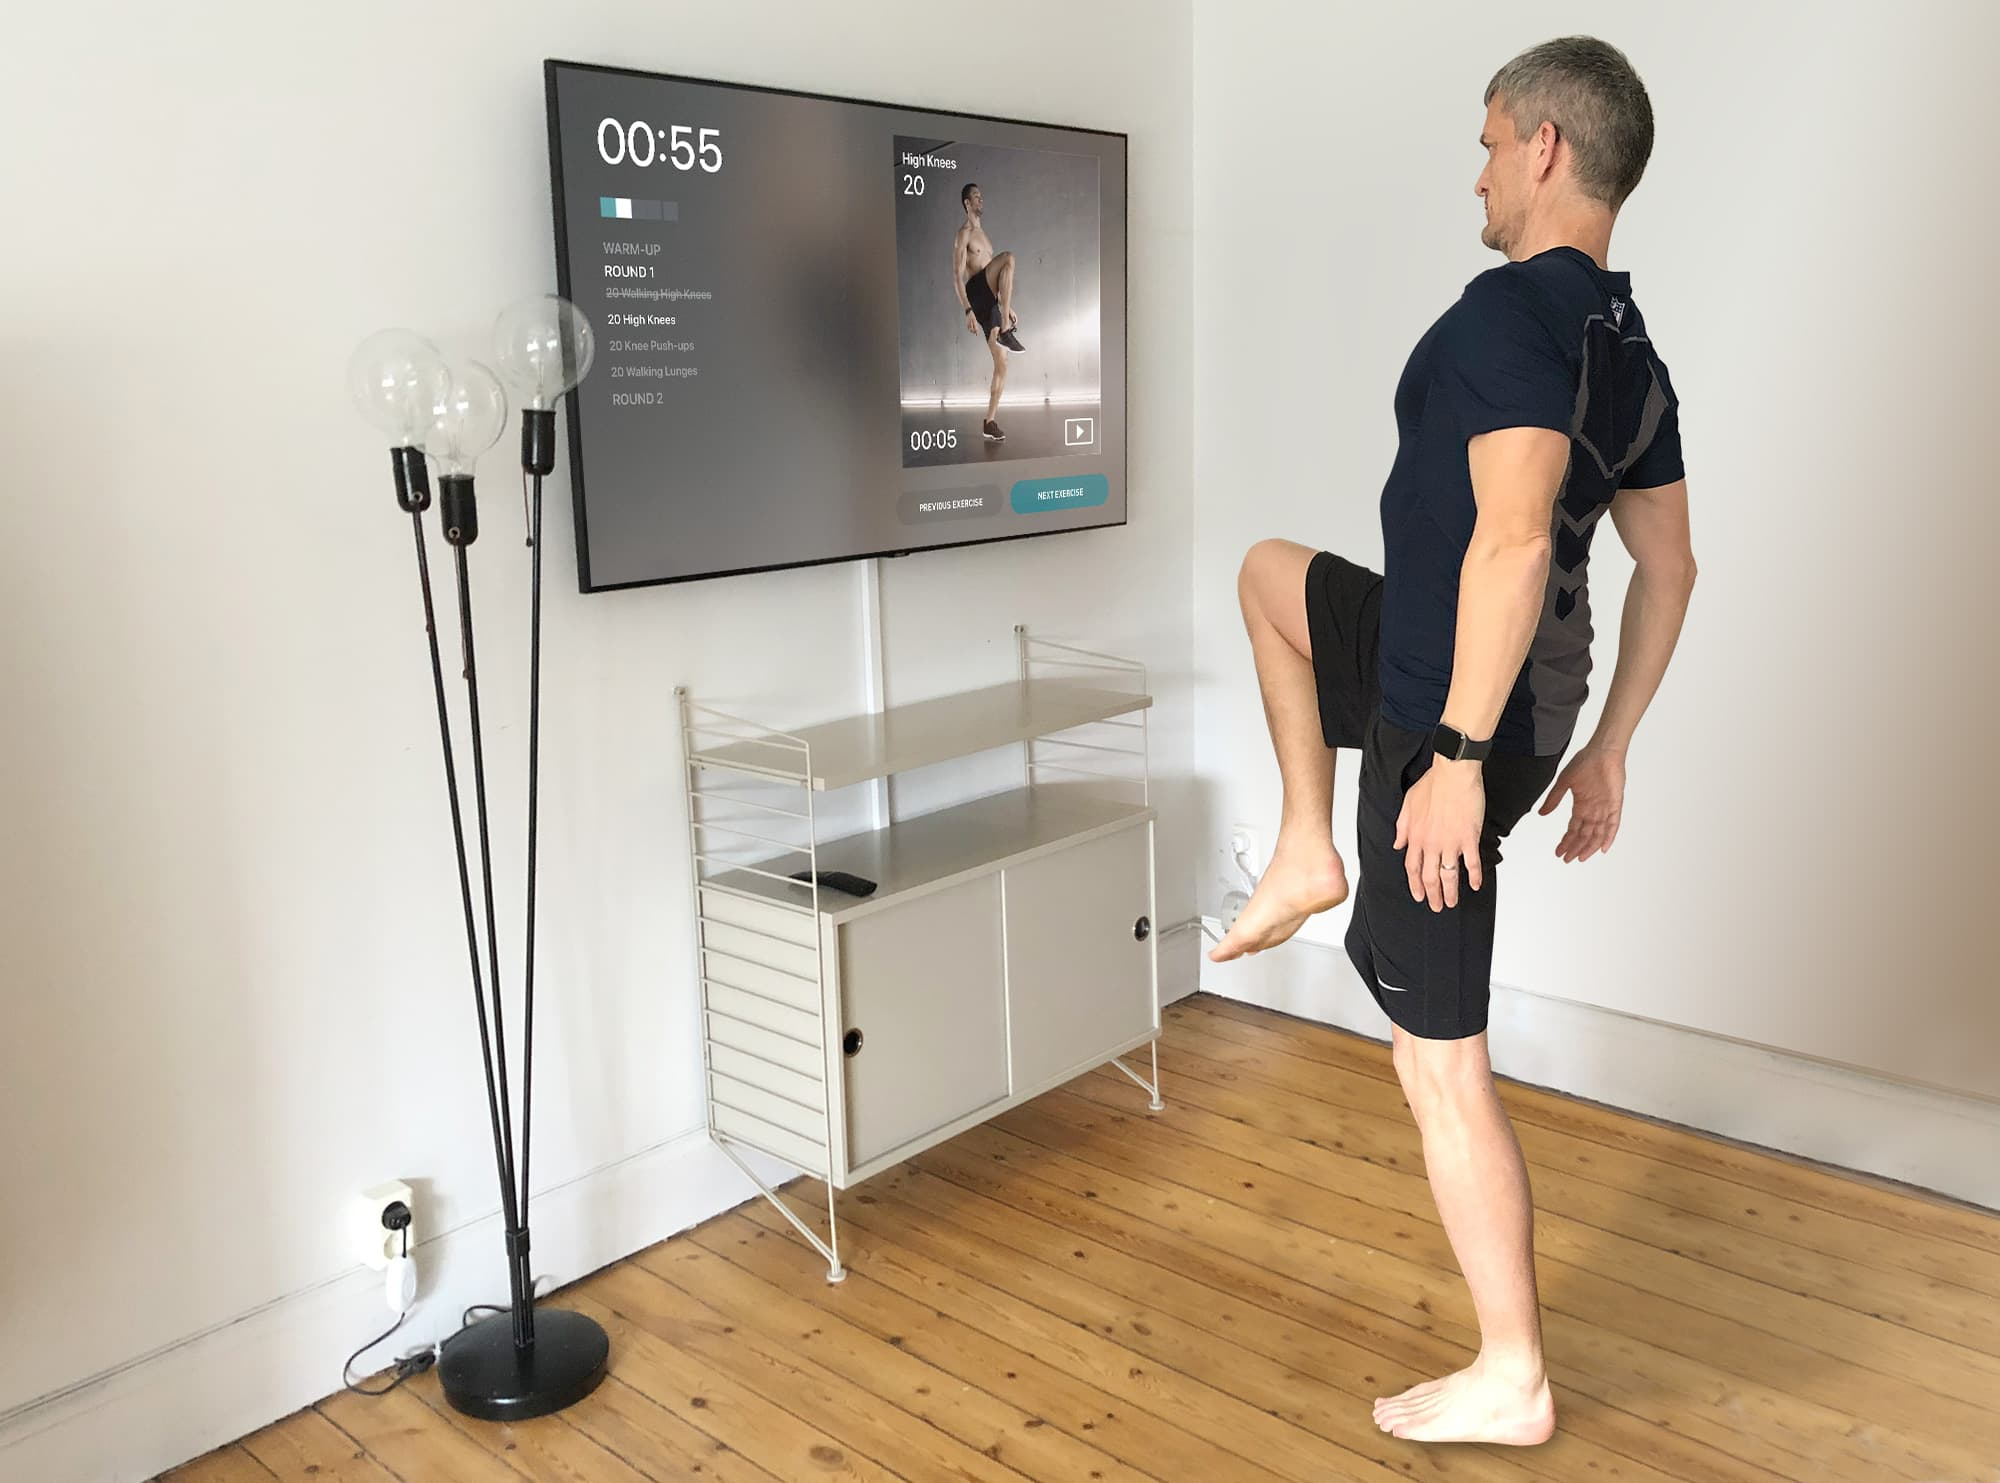 Can't get to the gym? Let your Apple TV bring the gym to you.